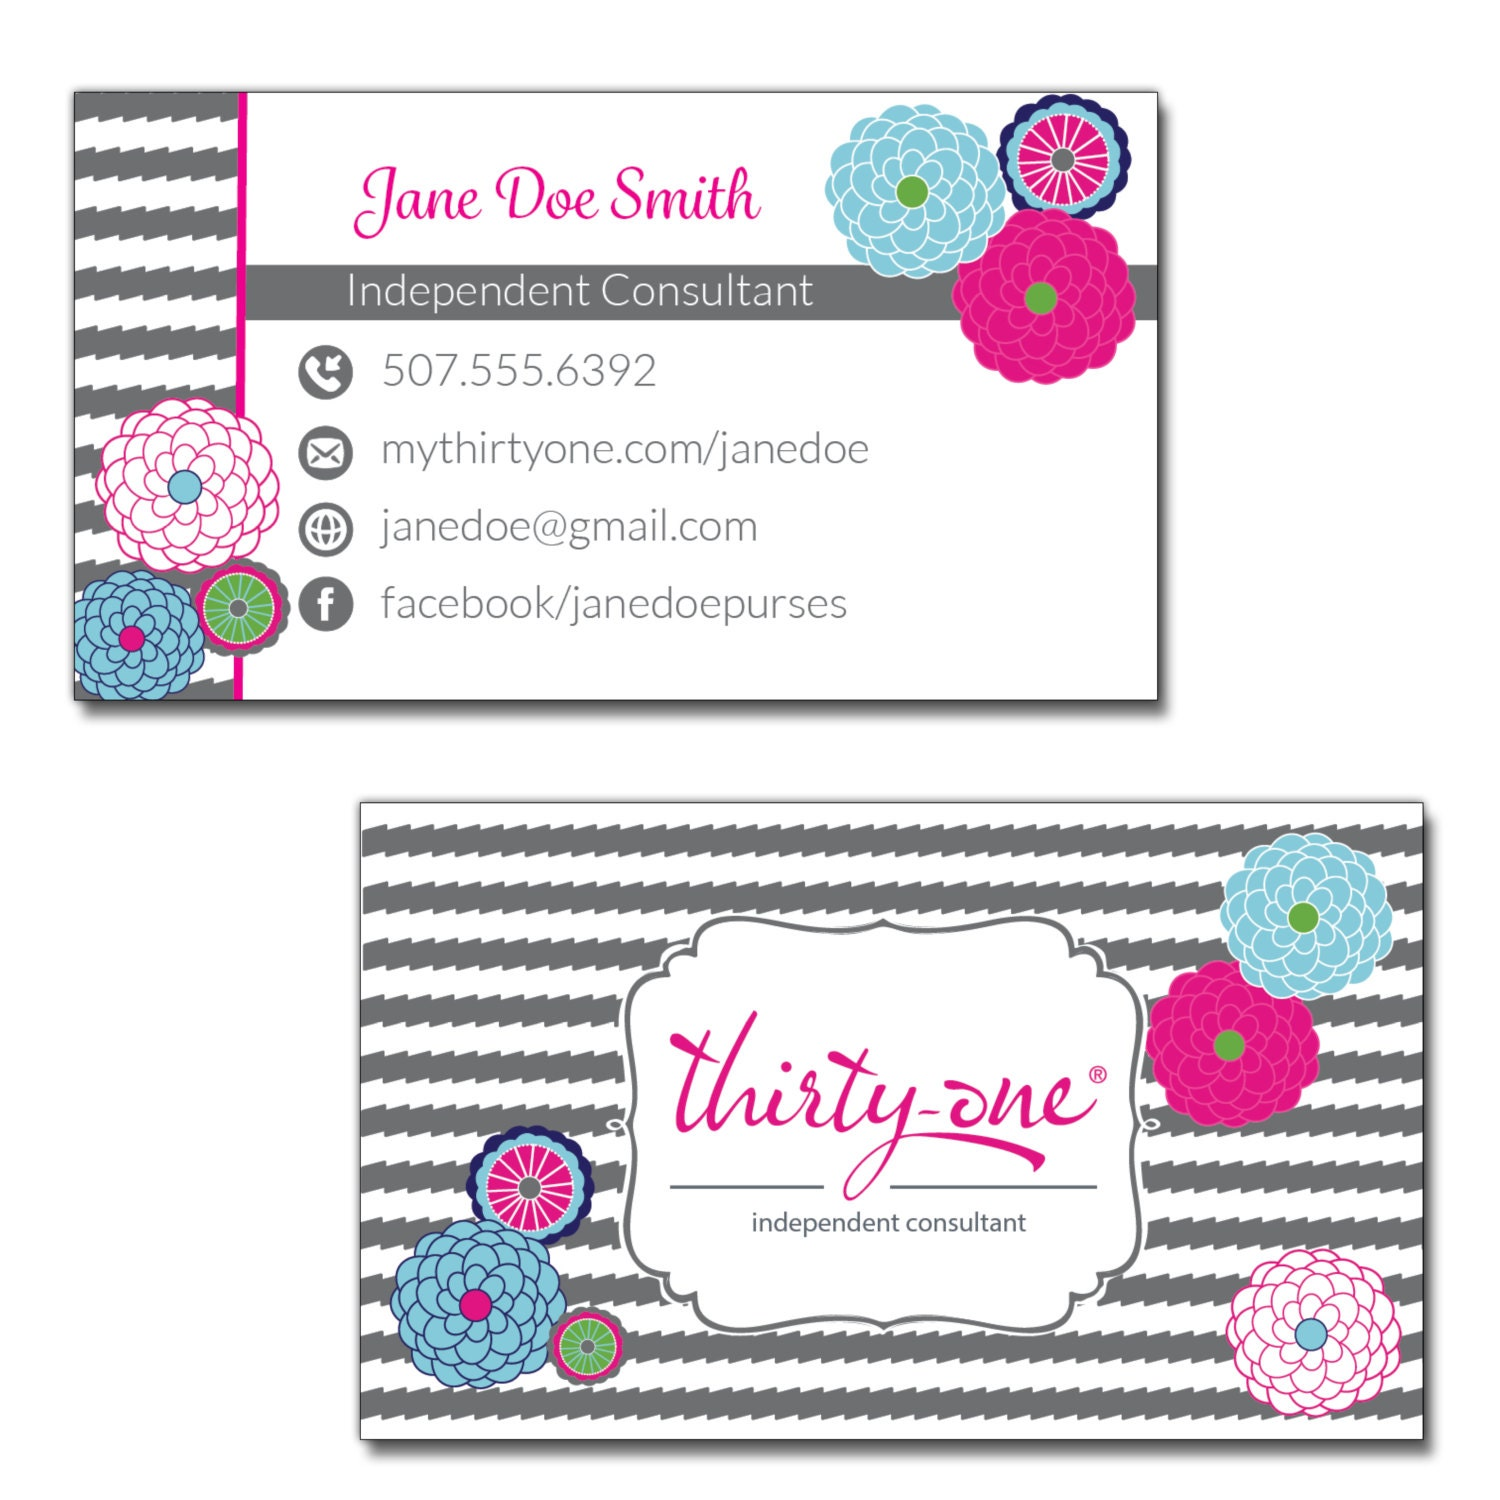 Thirty-One Consultant Business Cards Bubble Bloom and Grey